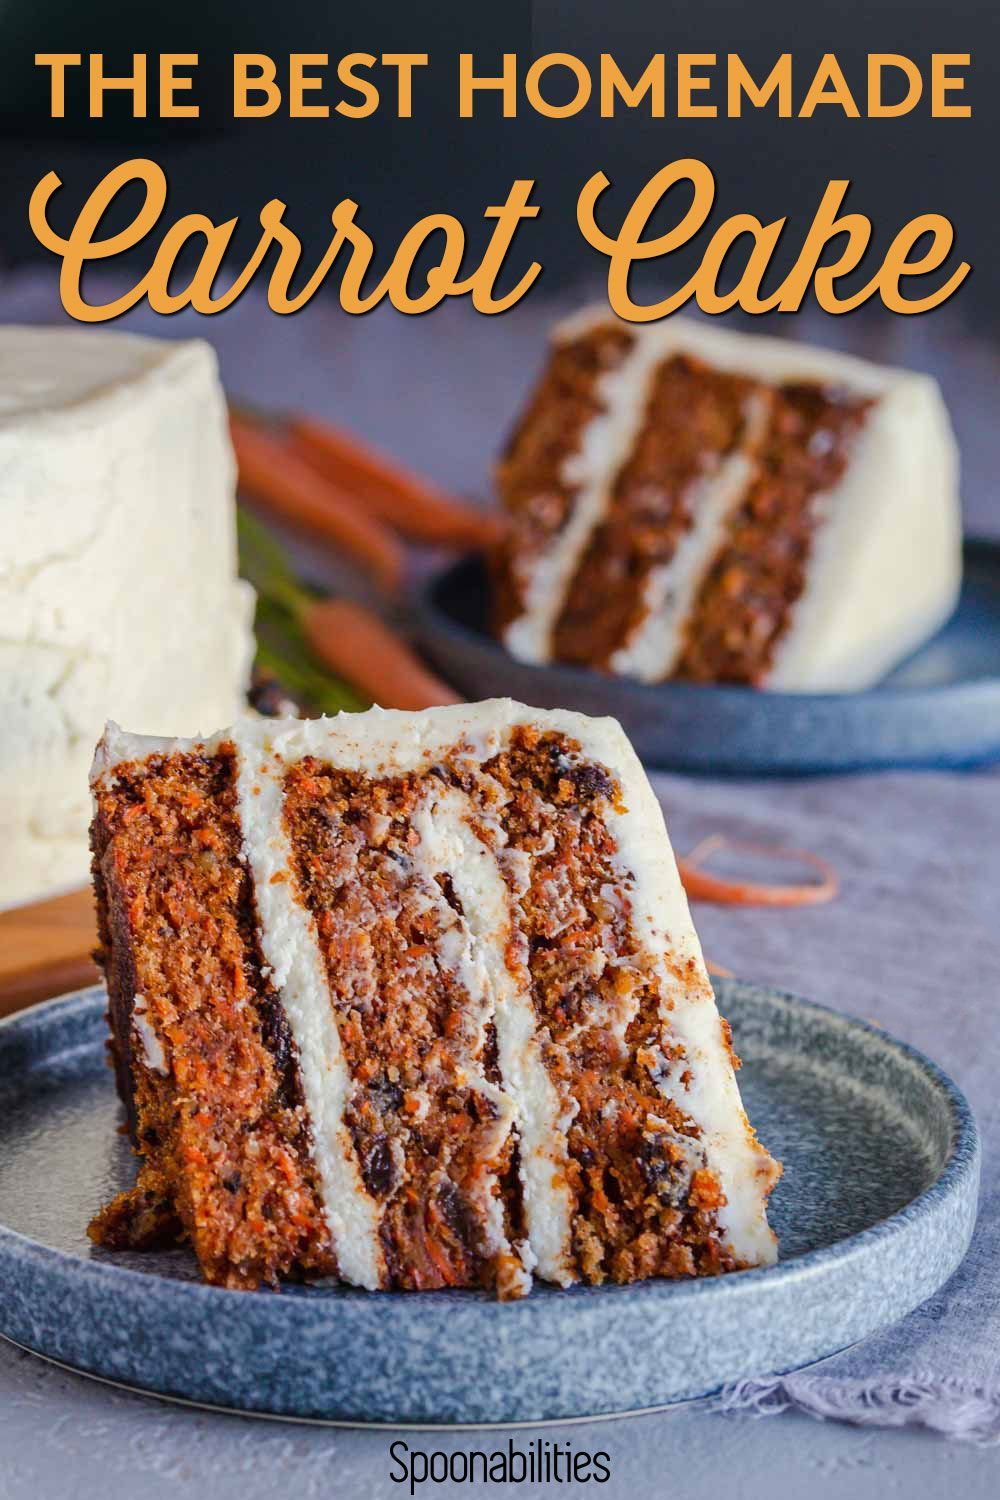 Best Carrot Cake Recipe With Cream Cheese Frosting In 2021 Carrot Cake Recipe Homemade Recipes Dessert Easy Homemade Desserts